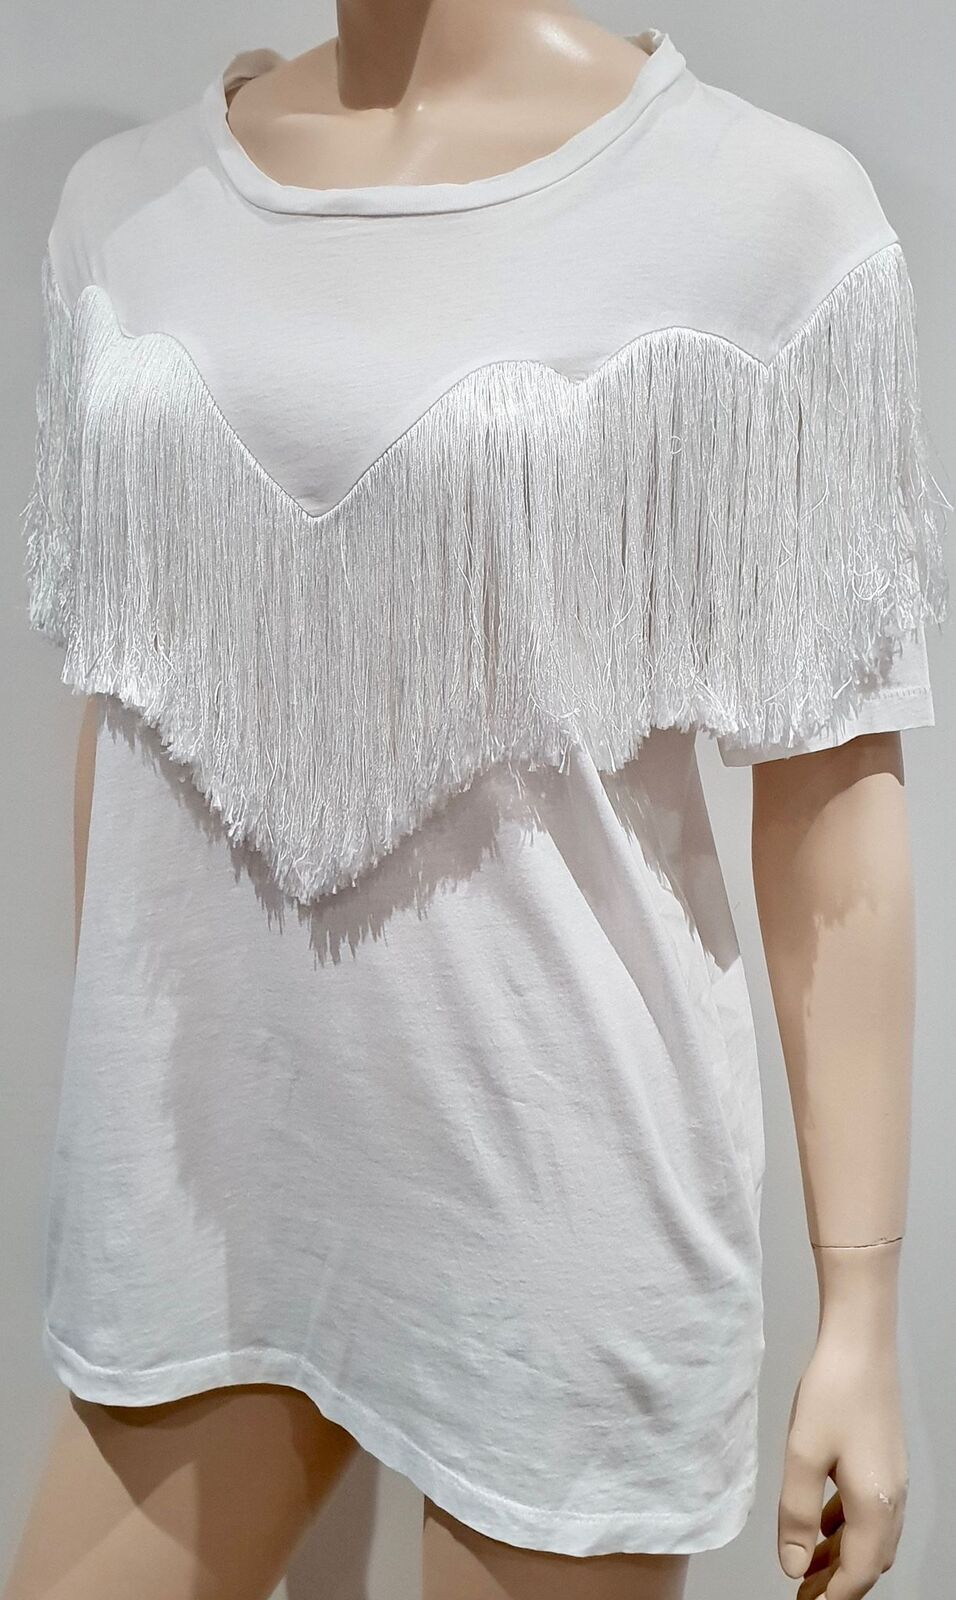 ACNE STUDIOS White Cotton JOSHI FRINGE Silk Blend Fringed T-Shirt Tee Top M